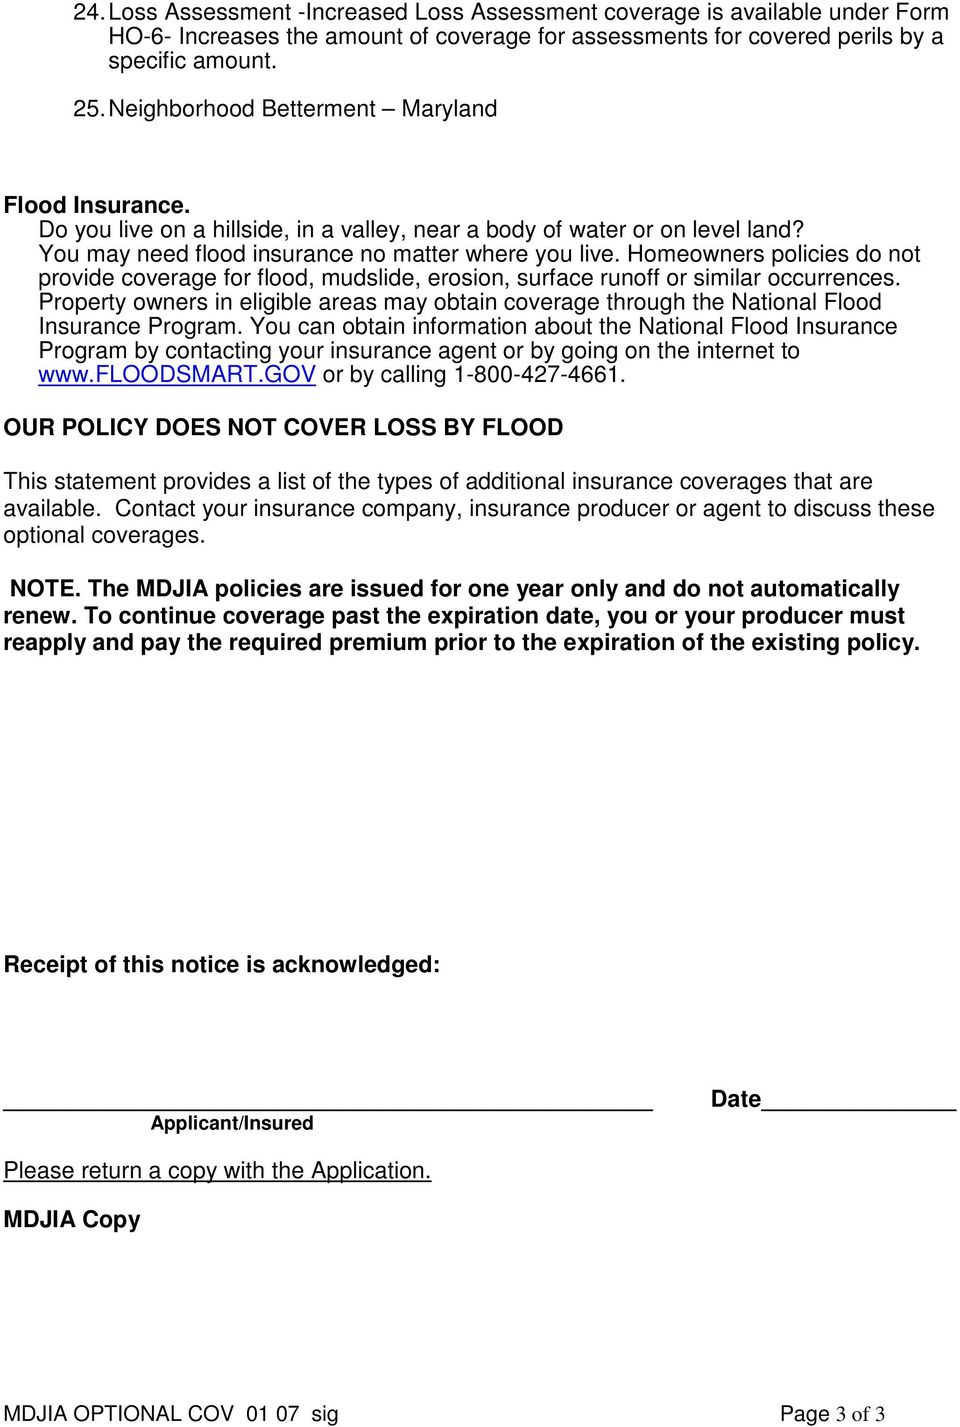 Homeowners policies do not provide coverage for flood, mudslide, erosion, surface runoff or similar occurrences.